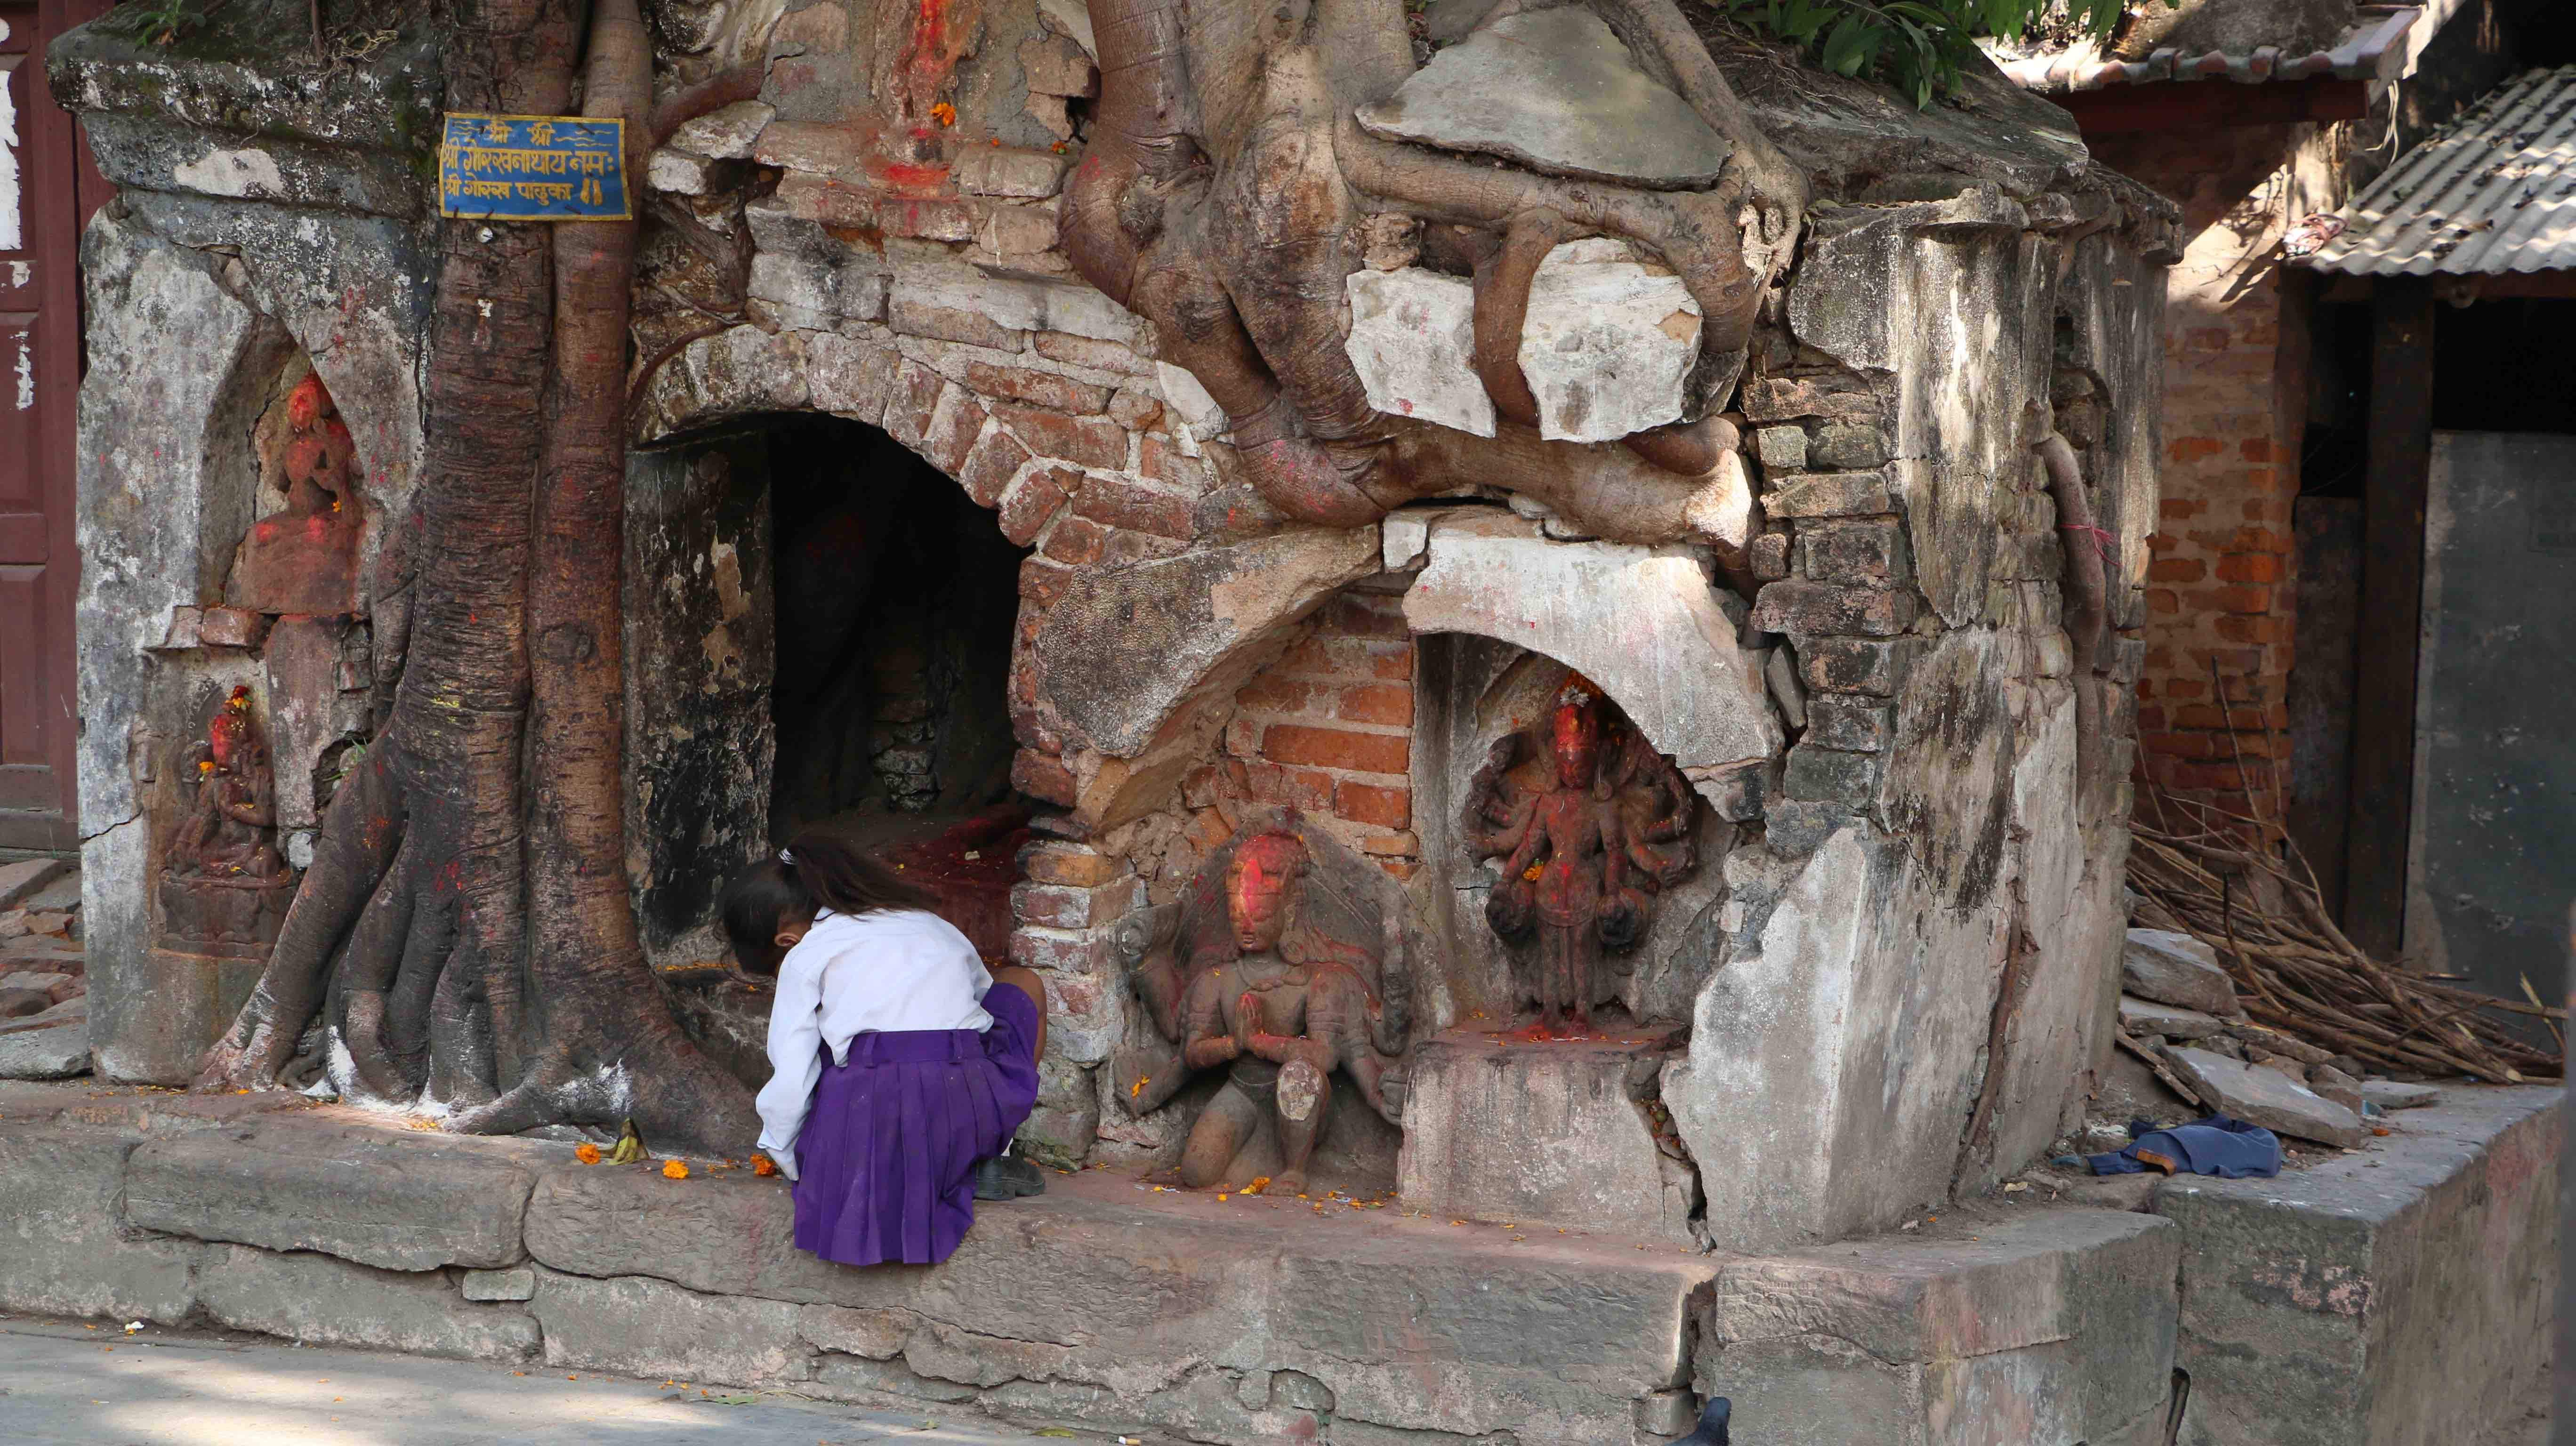 Enshrining Space: Shrines, Public Space and Hinduization among the